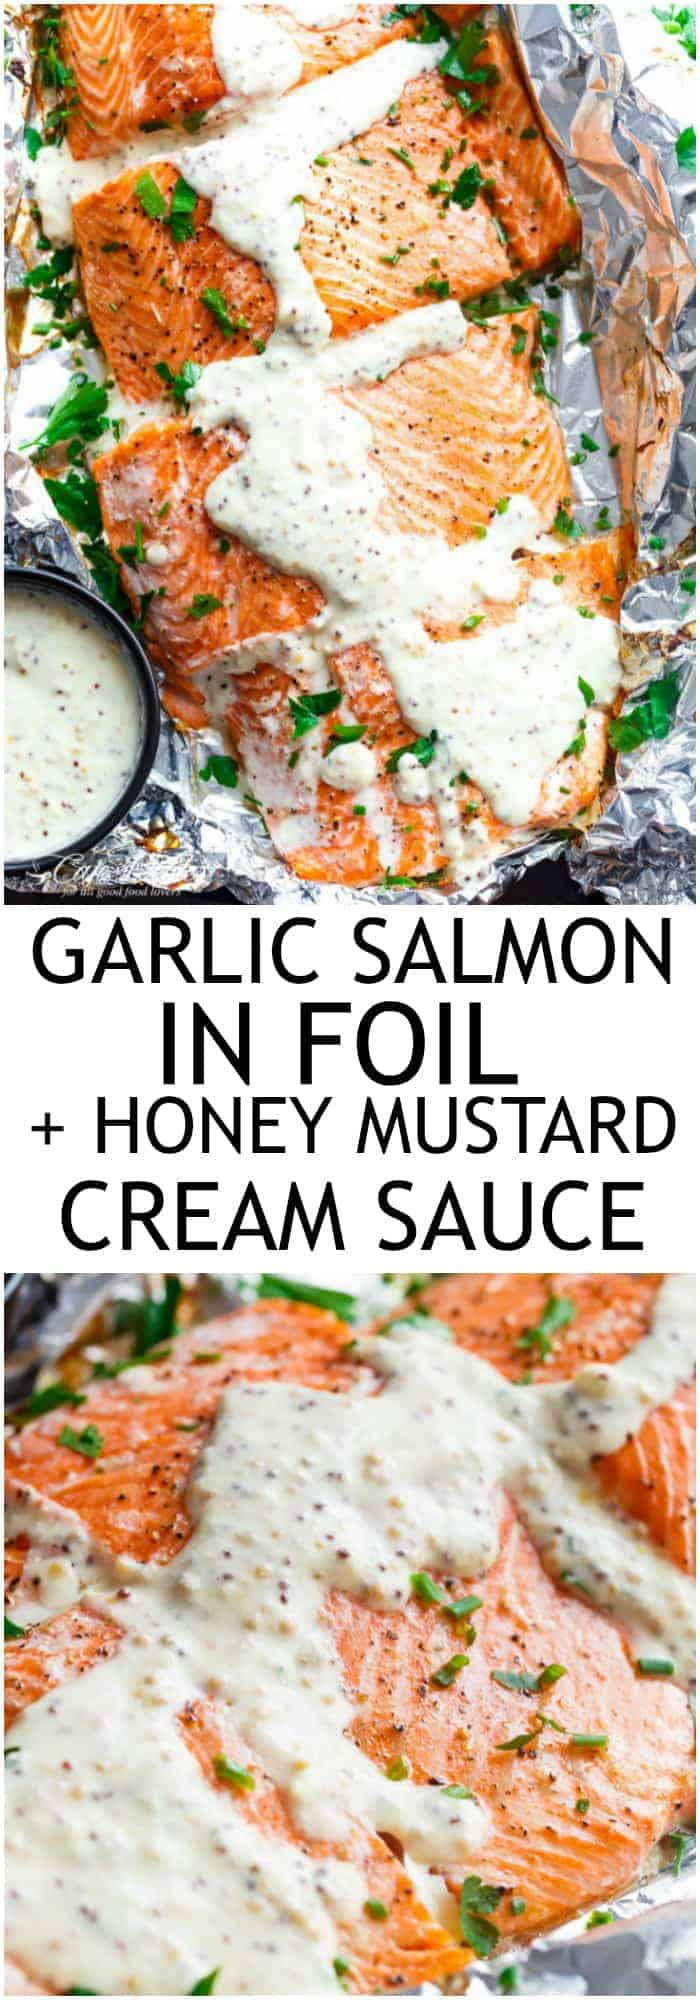 Foil Baked Garlic Salmon With A Thick And Creamy Honey Mustard Cream Cheese Sauce! The salmon is so easy and quick to make in the oven, with minimal clean up thanks to the foil! | https://cafedelites.com